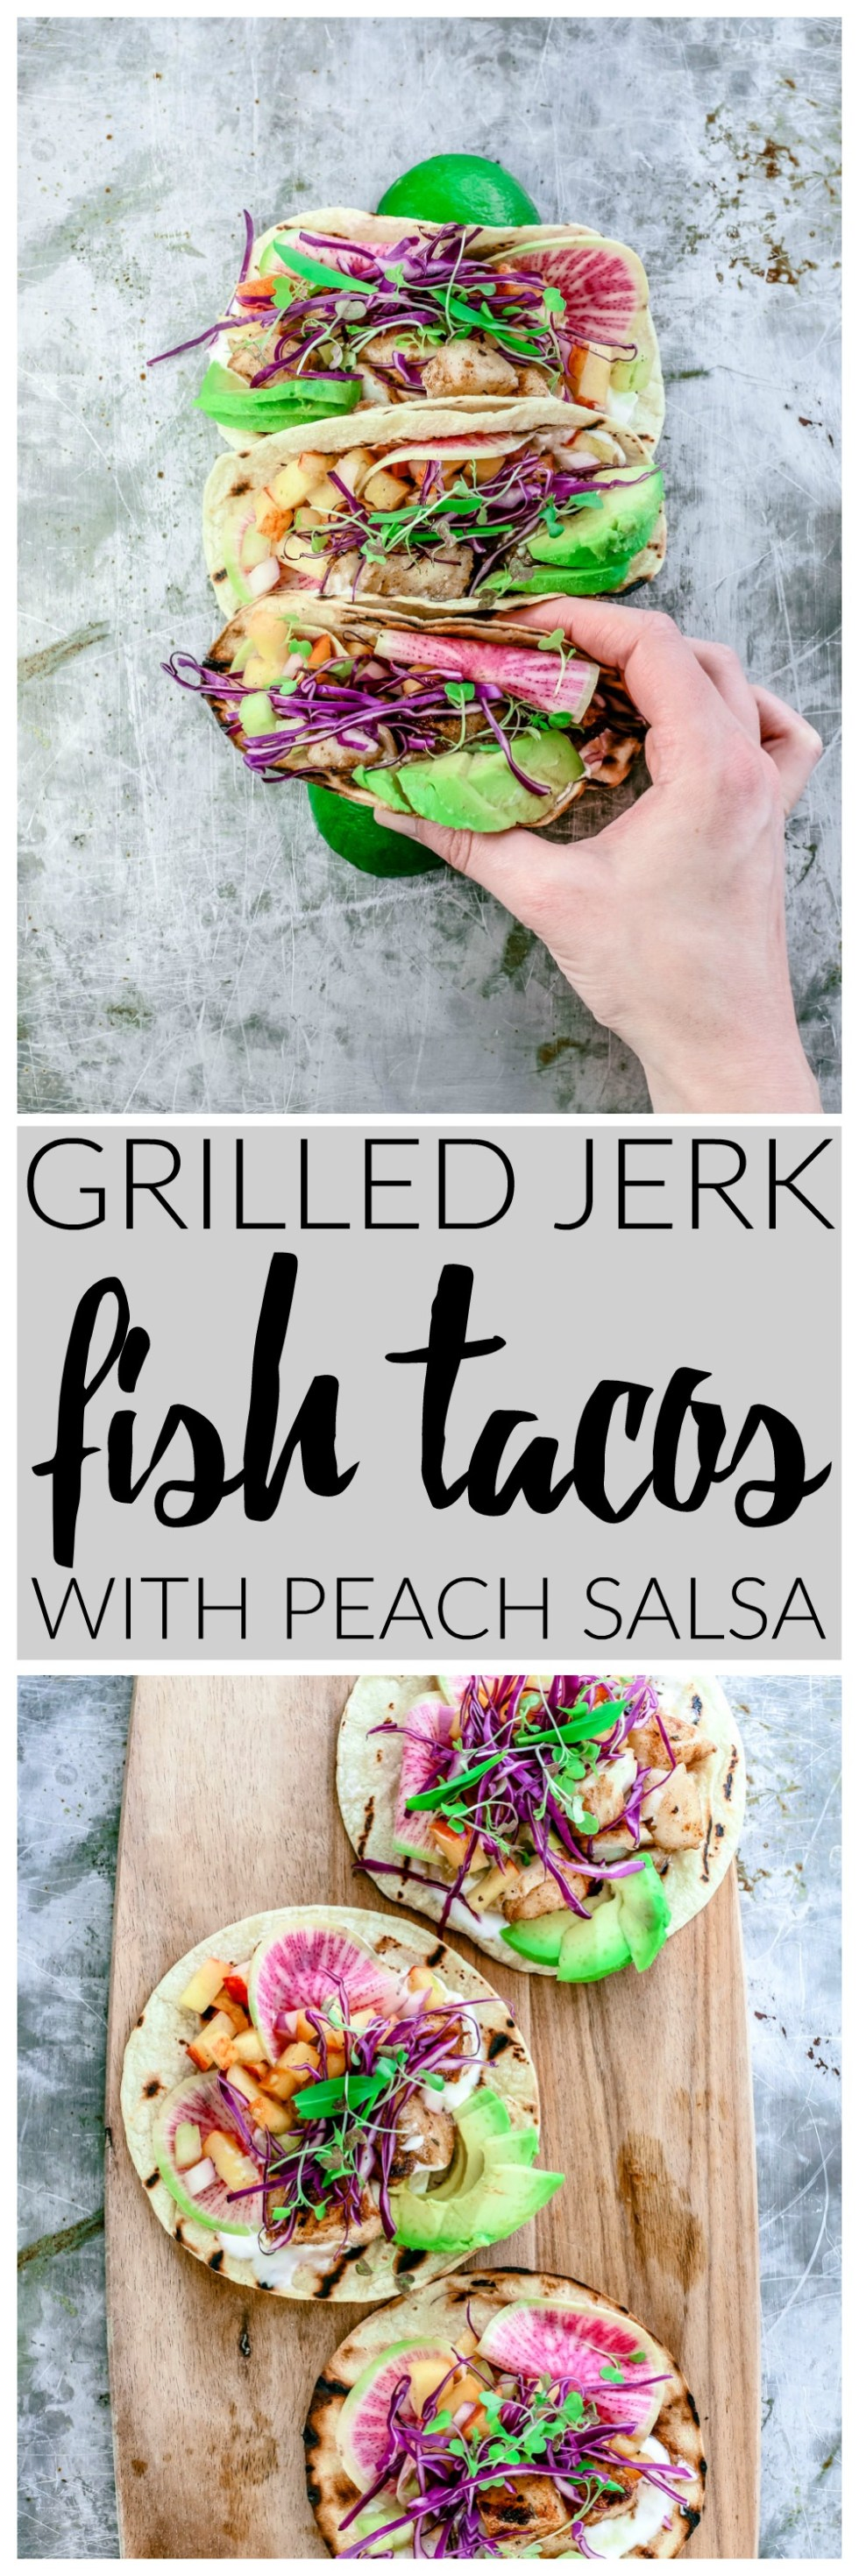 Grilled Jerk Fish Tacos With Tangy Peach Salsa | Killing Thyme